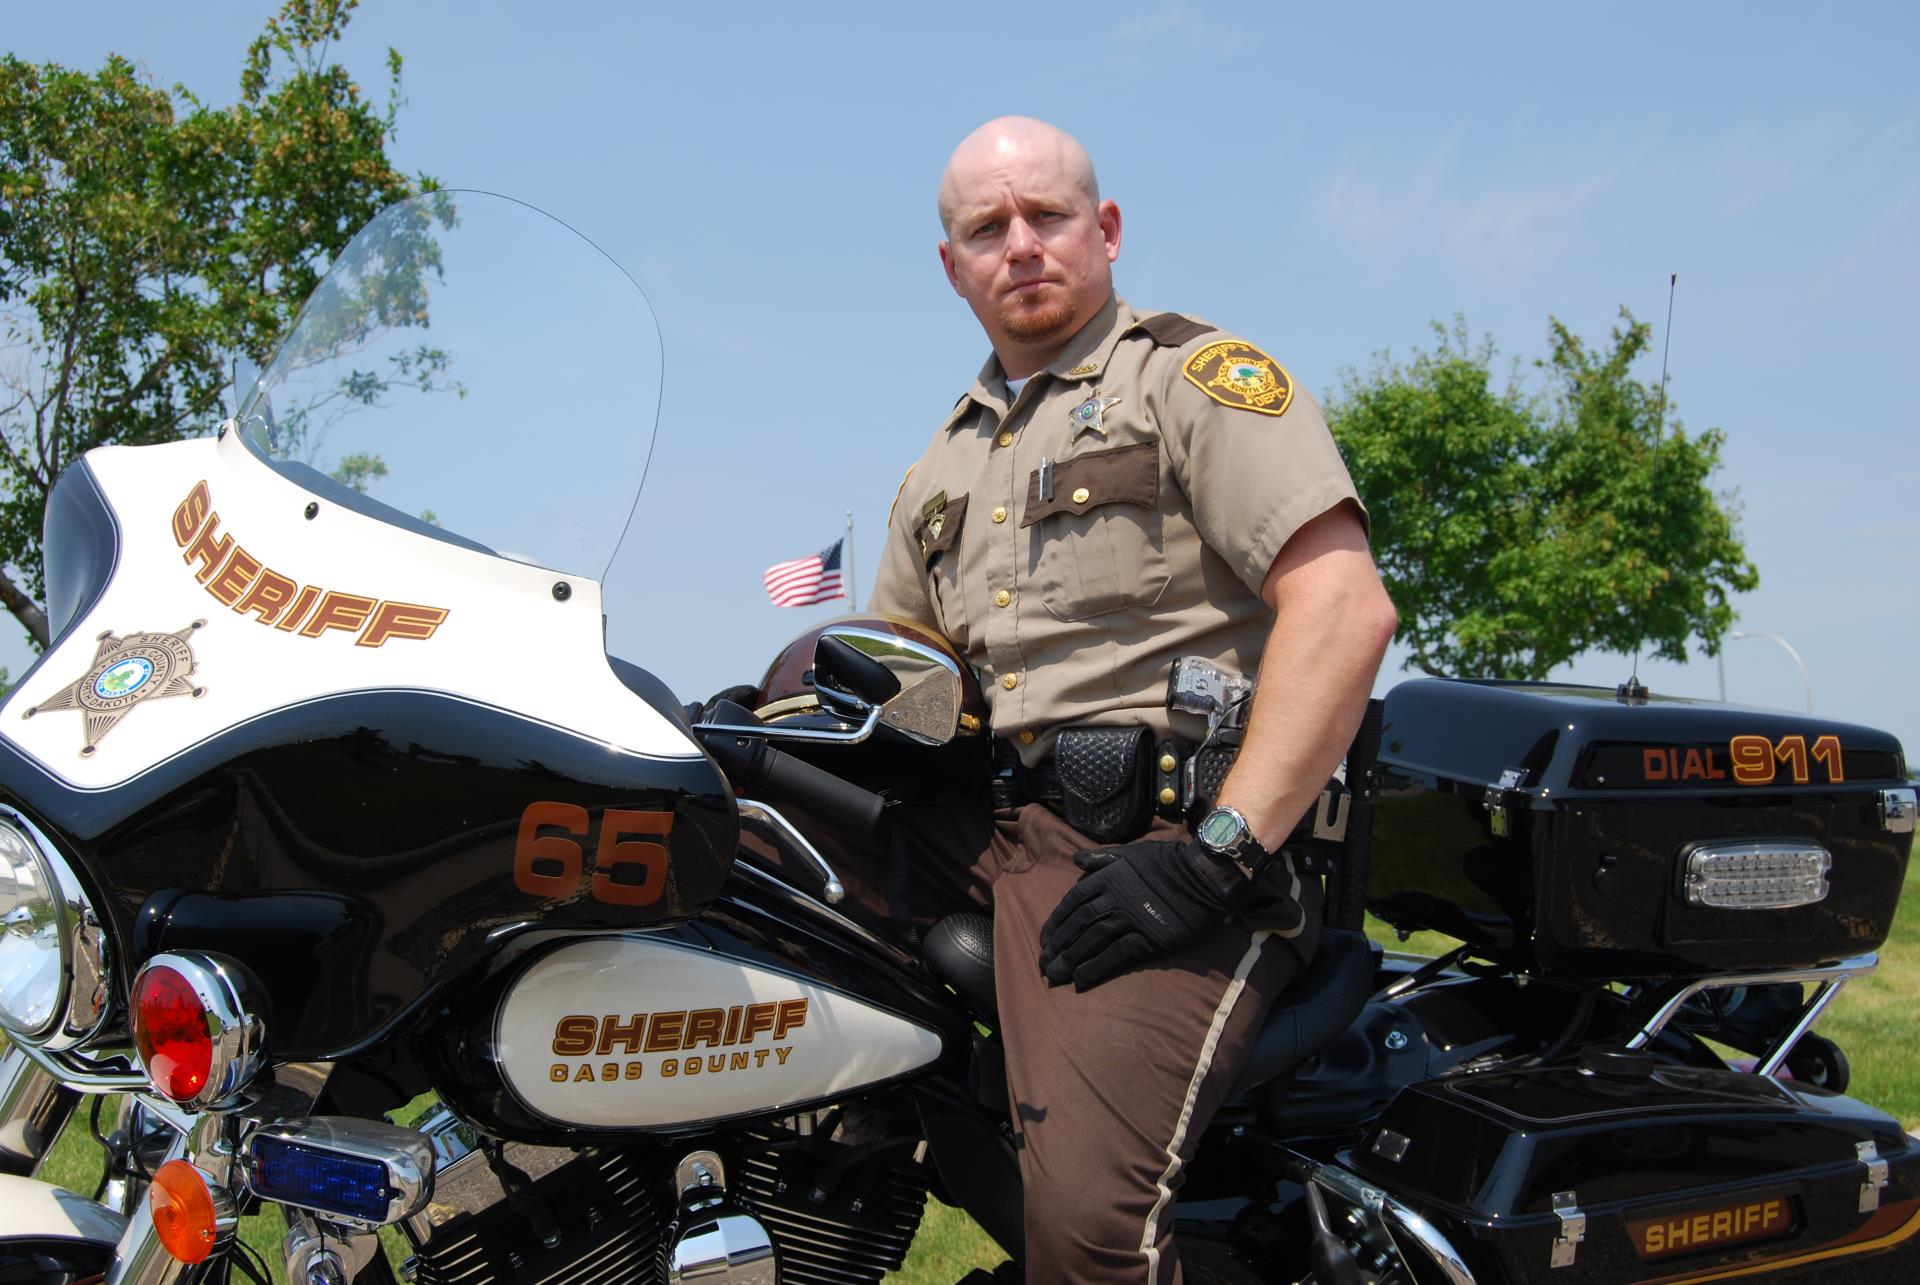 Cass County Deputy on patrol motorcycle